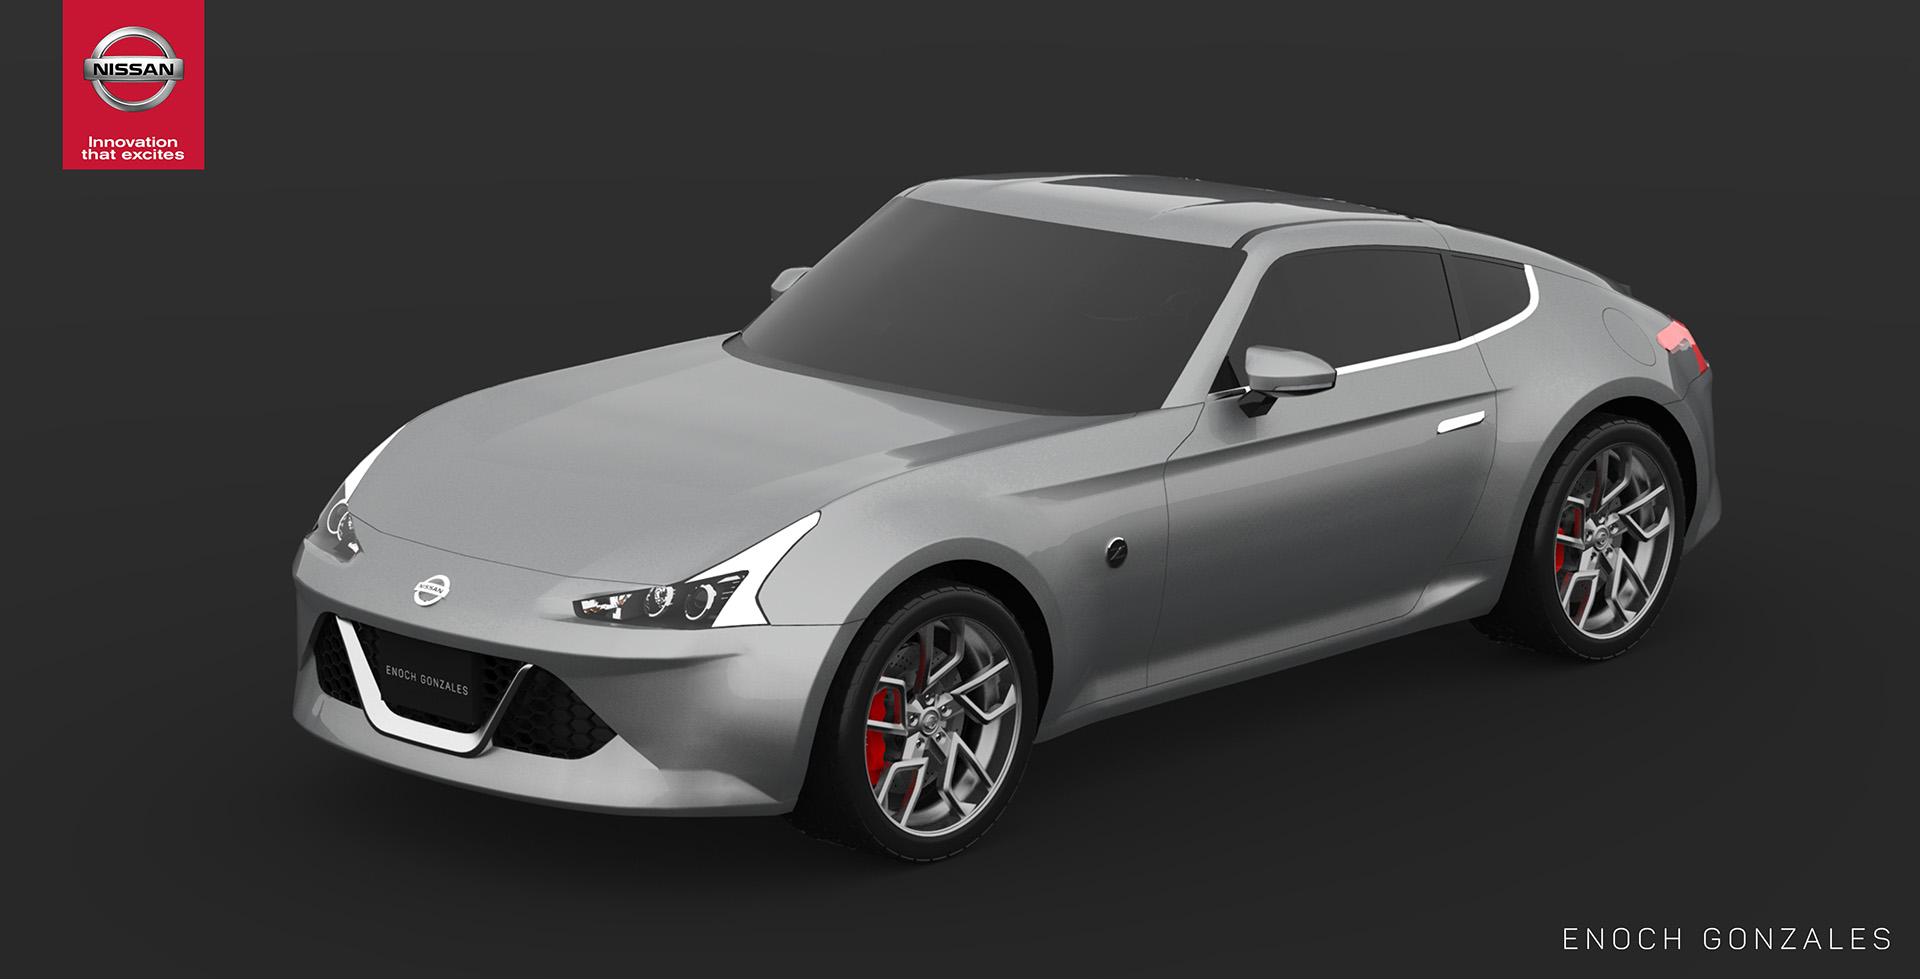 Nissan Fairlady Z >> 2019 Nissan Fairlady Z realistically envisioned - ForceGT.com